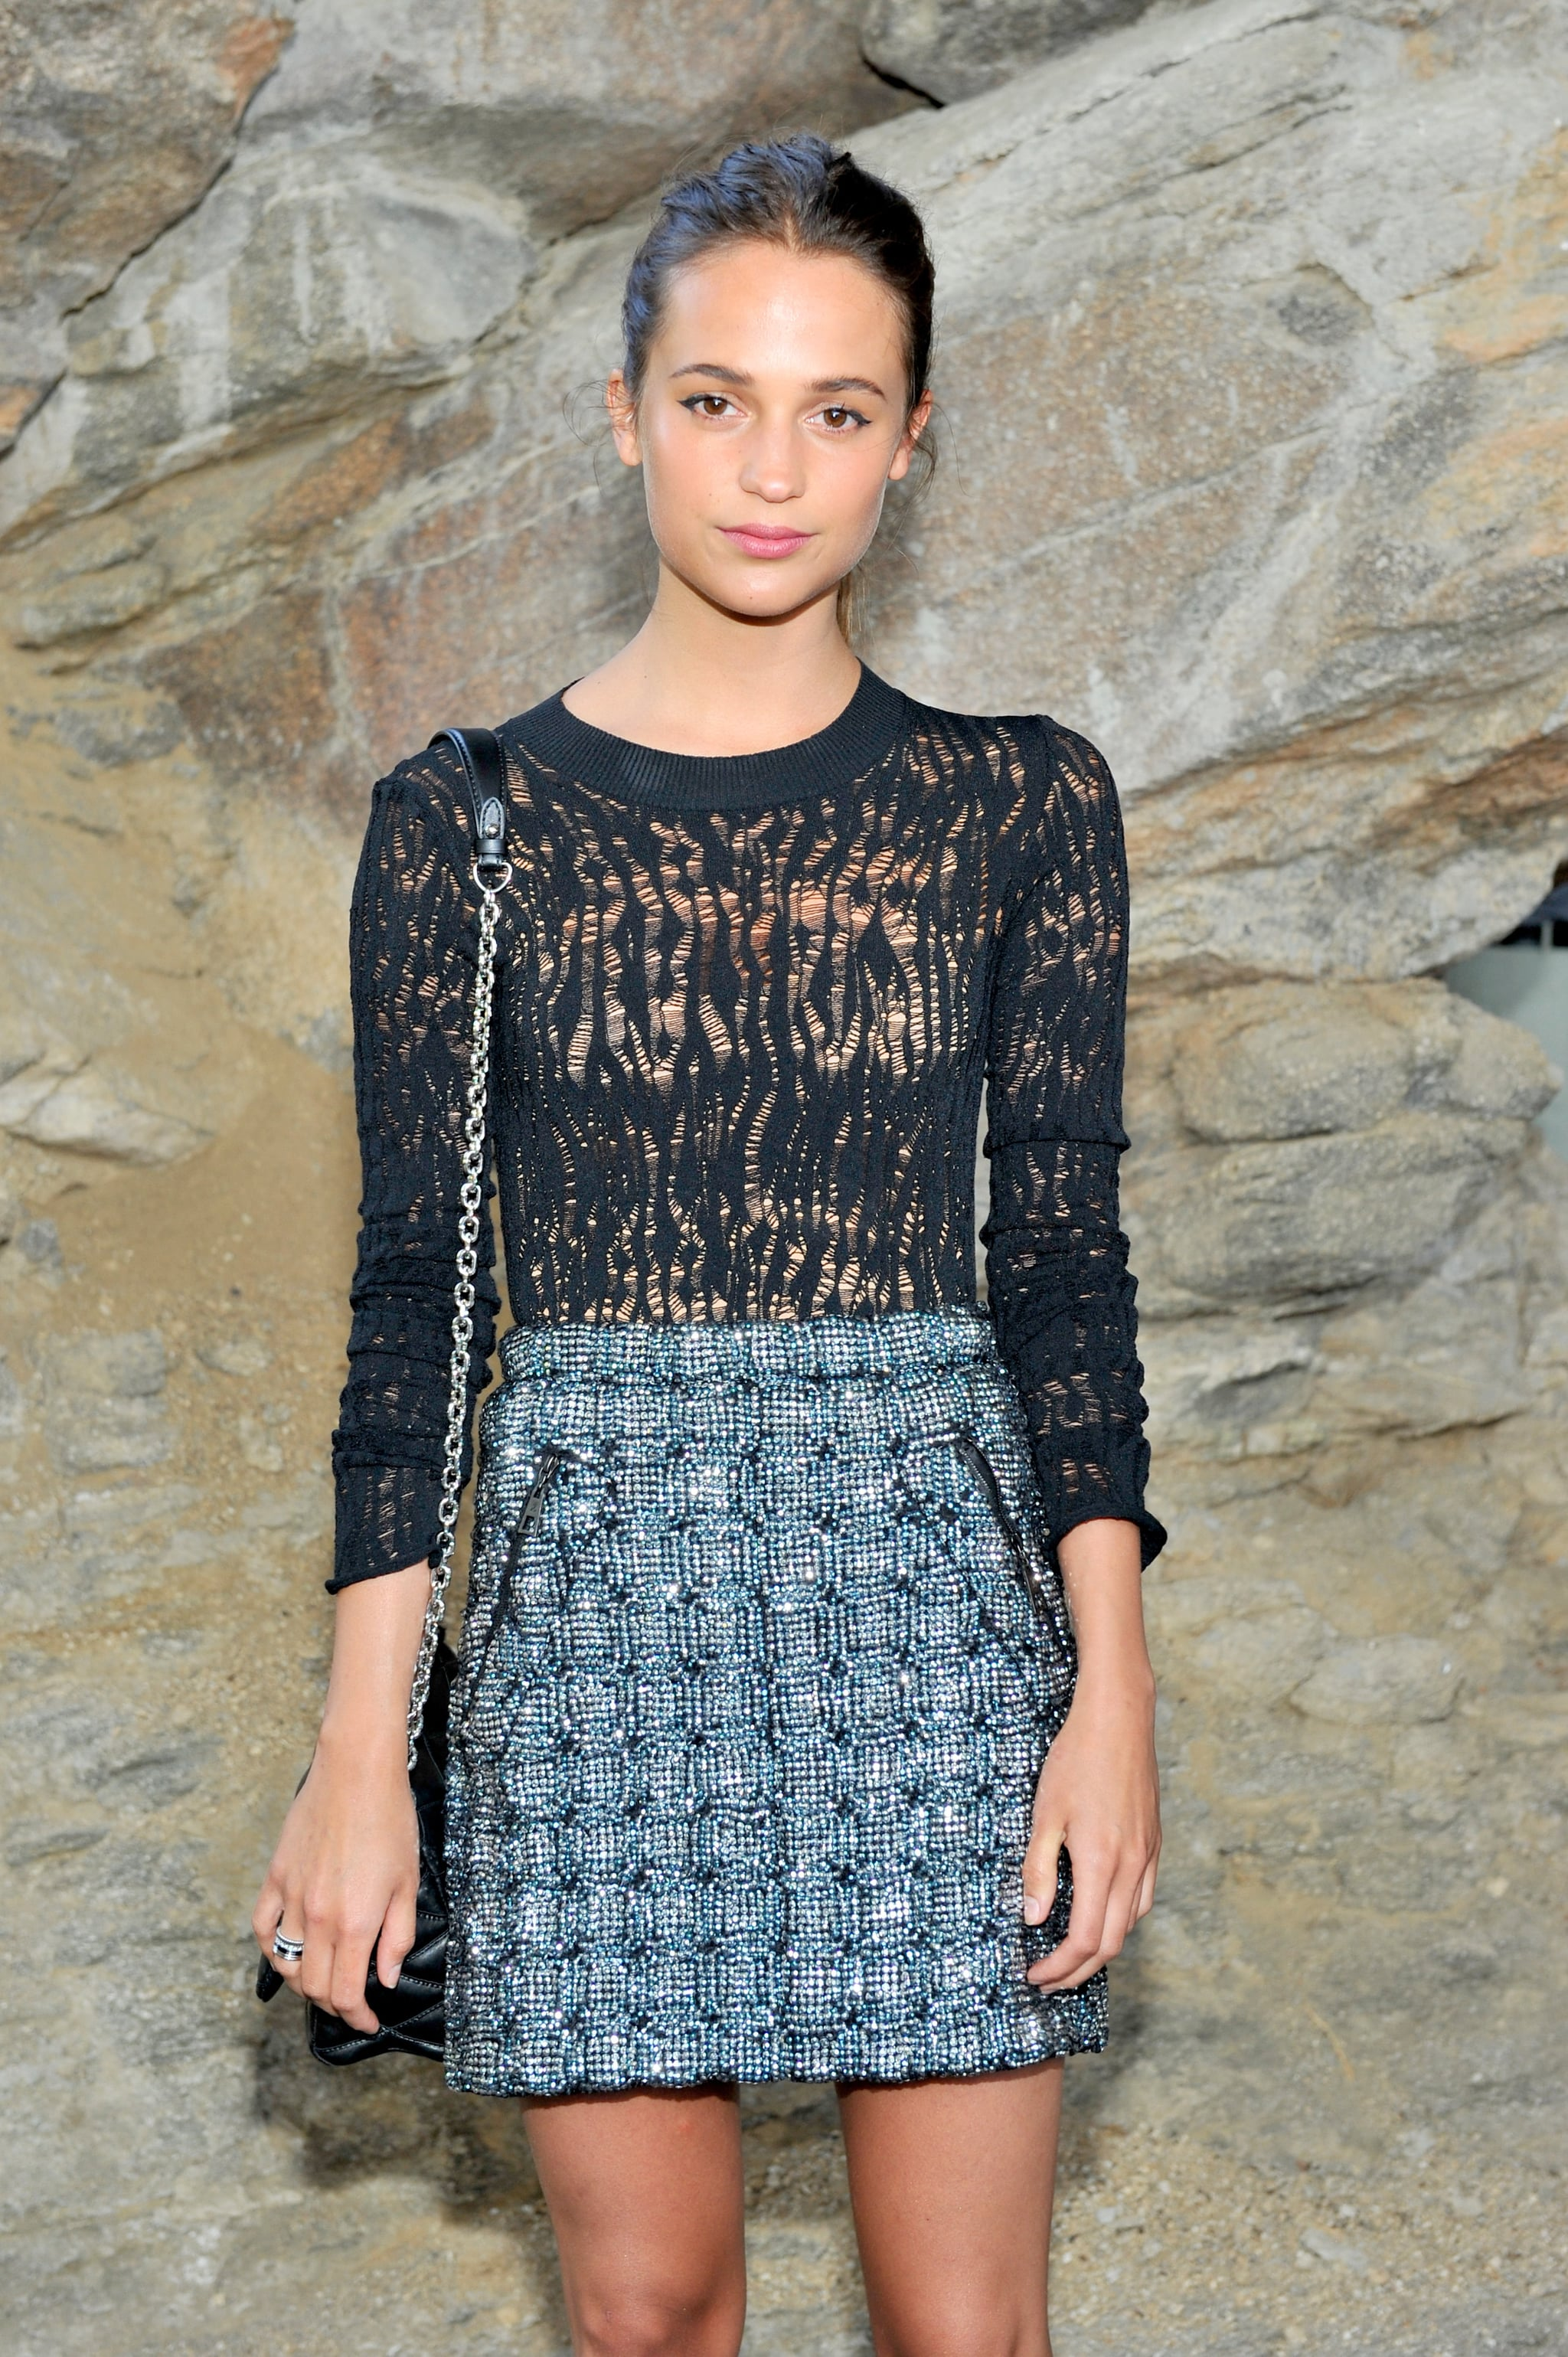 2e1b9753437 She's the Face of Louis Vuitton   13 Things You Need to Know About ...